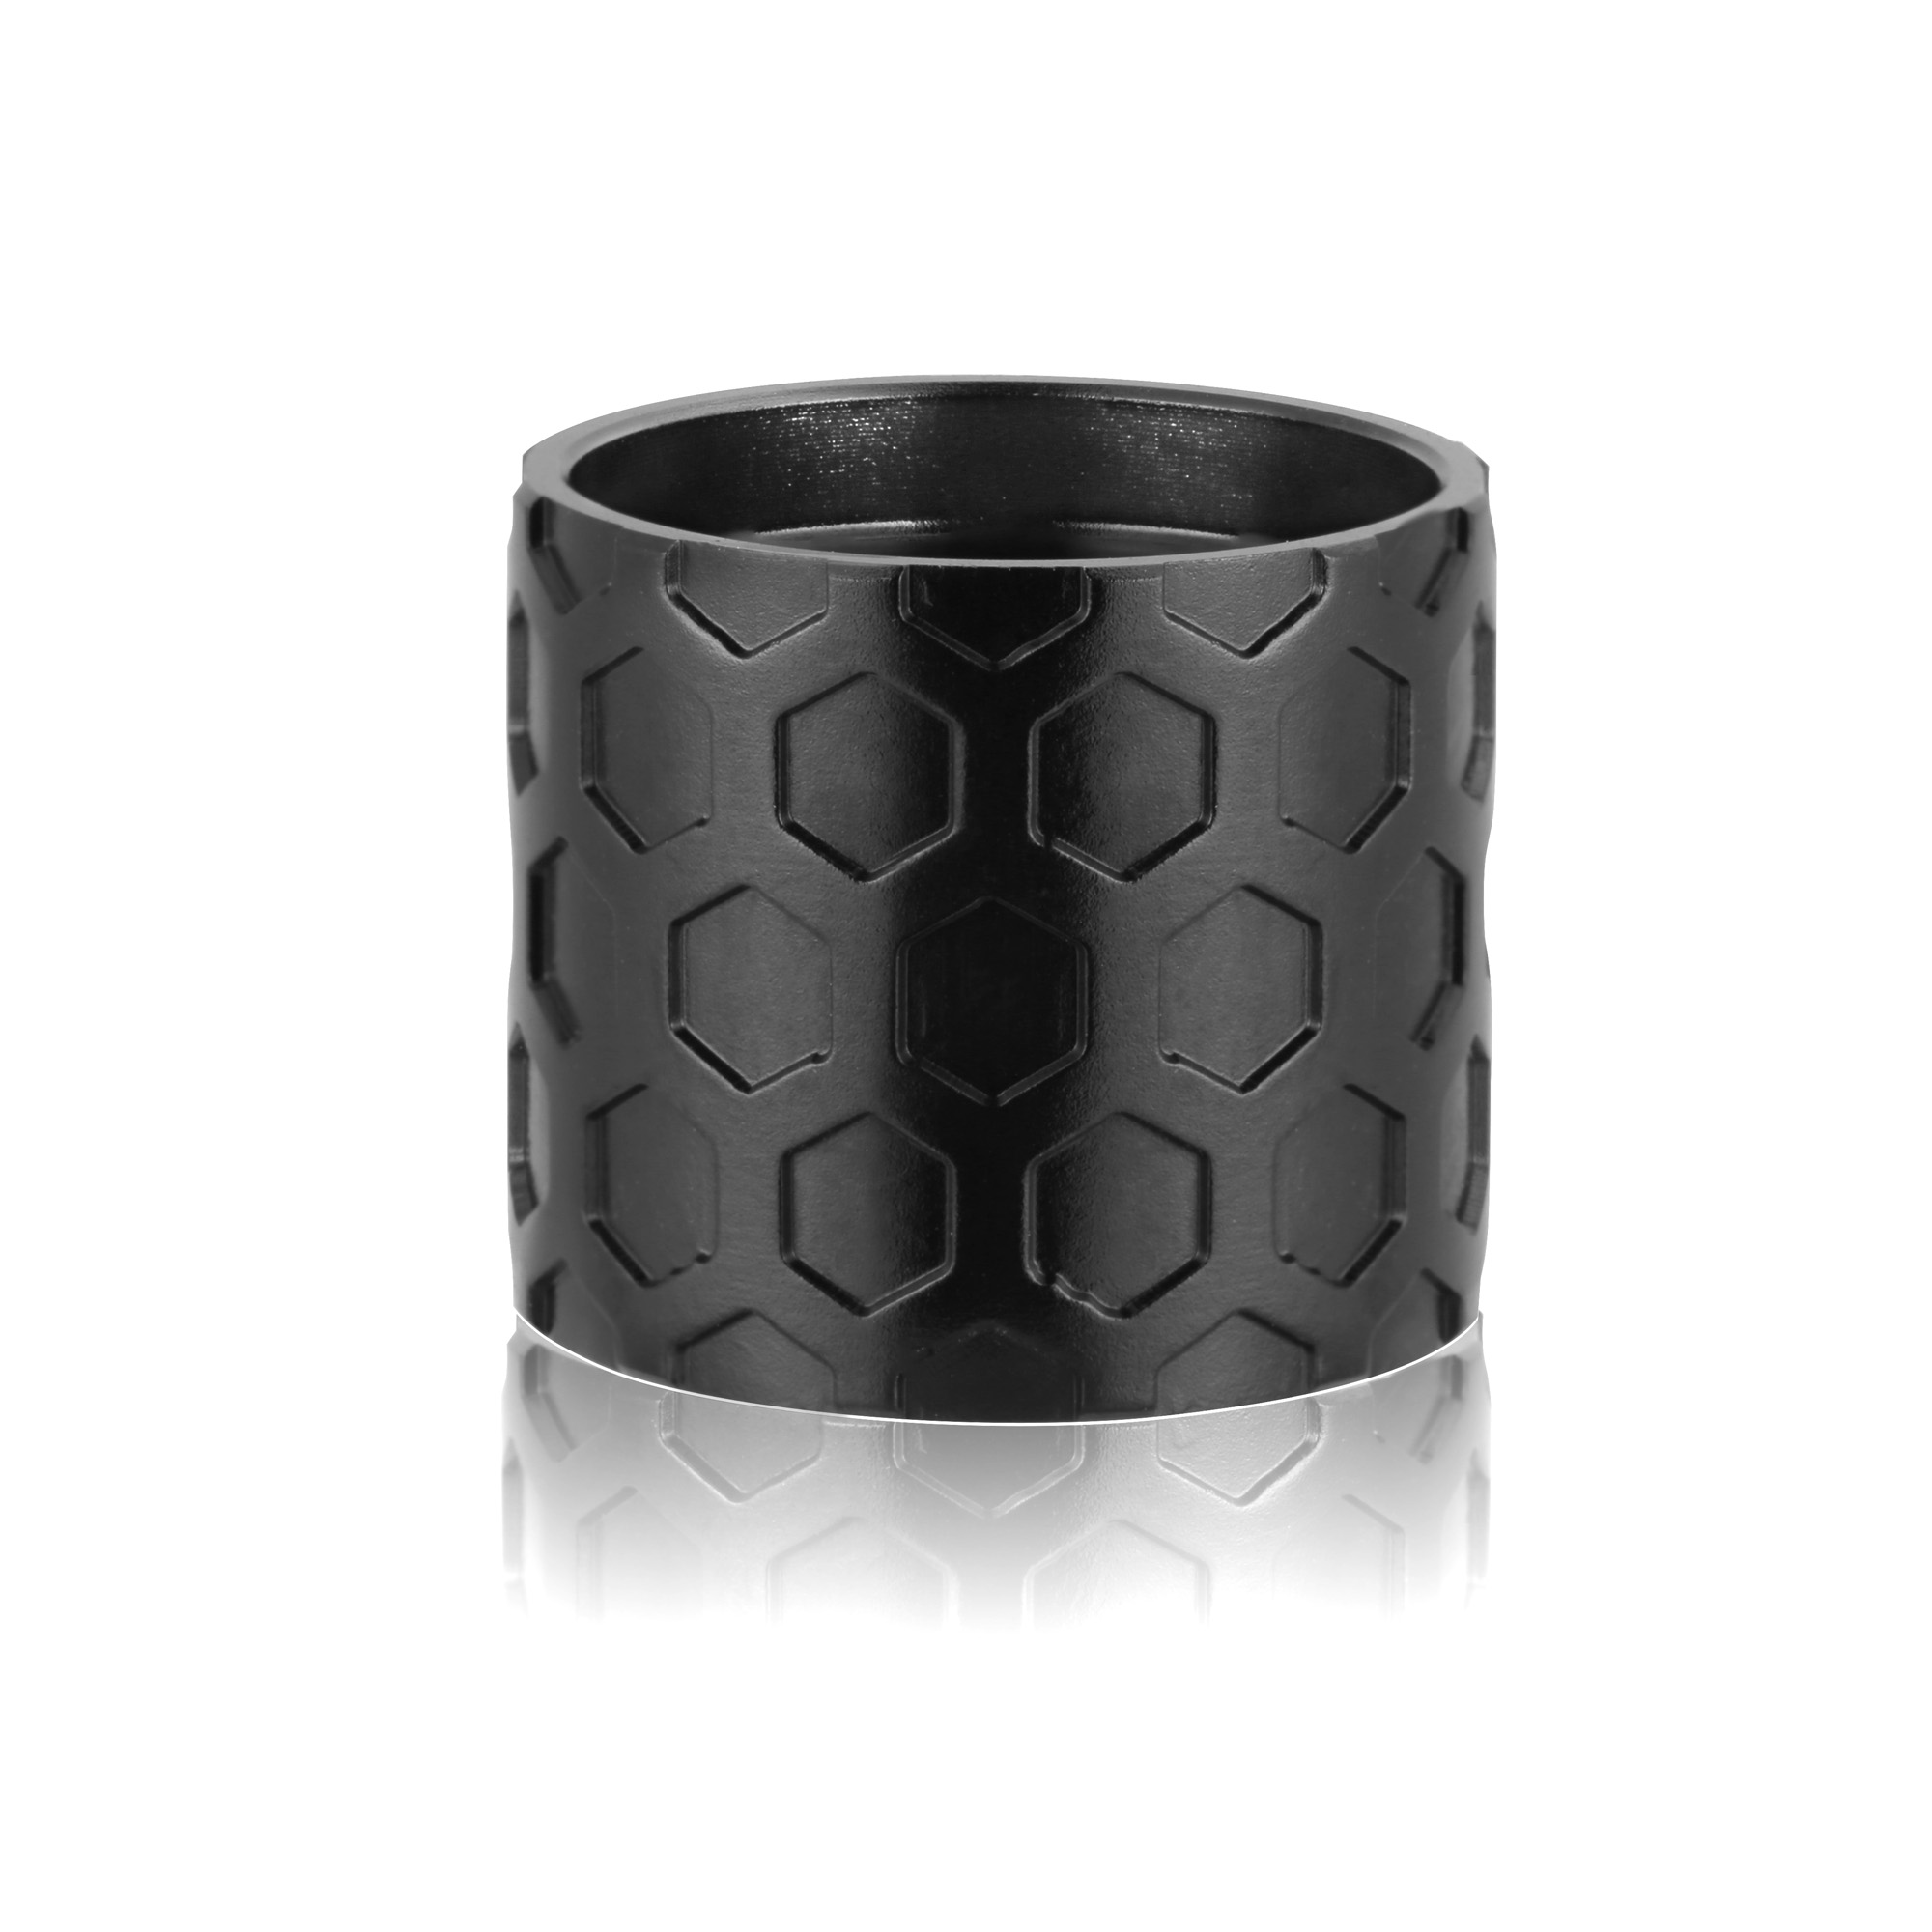 Custom thread protector with honeycomb pattern on it.